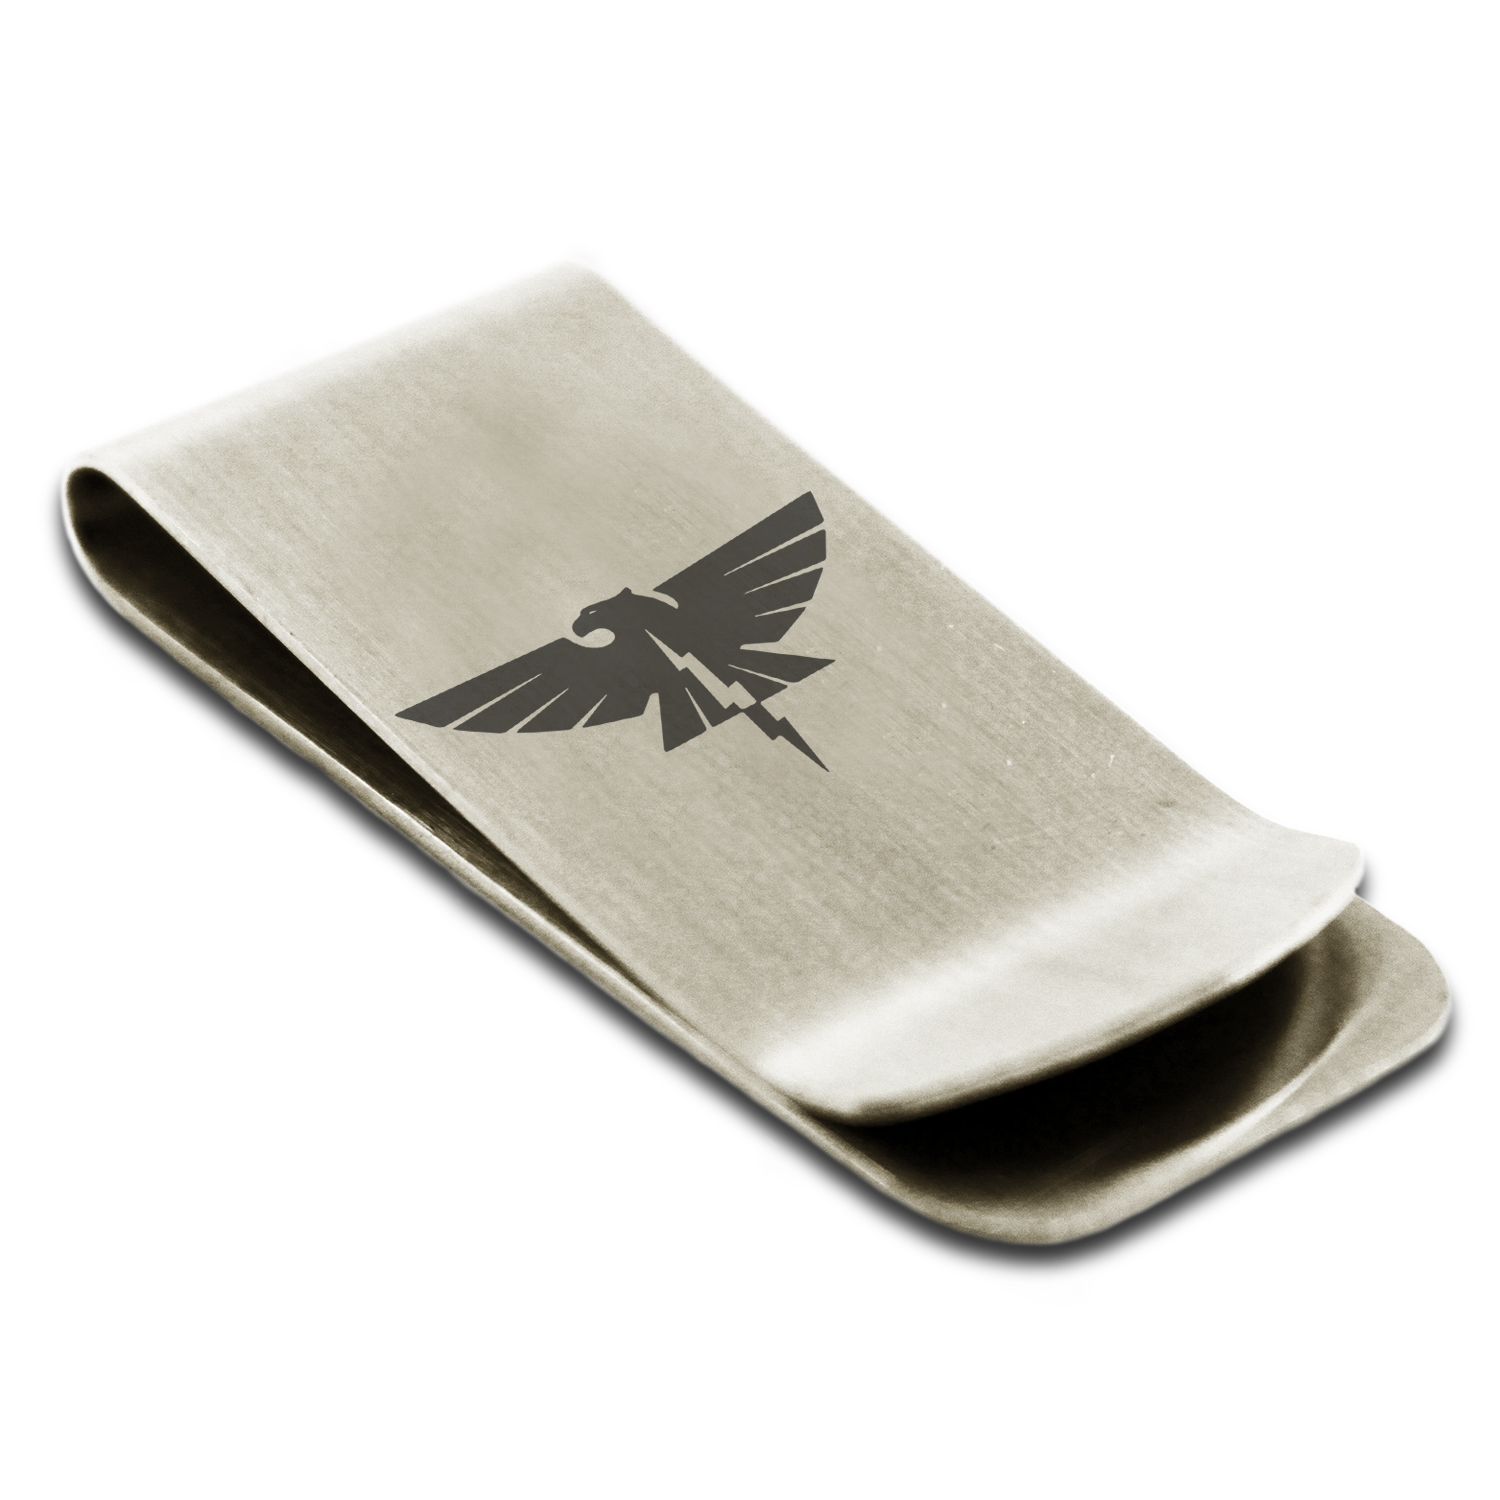 Stainless Steel Zeus Greek God of Sky Symbol Engraved Money Clip Credit Card Holder